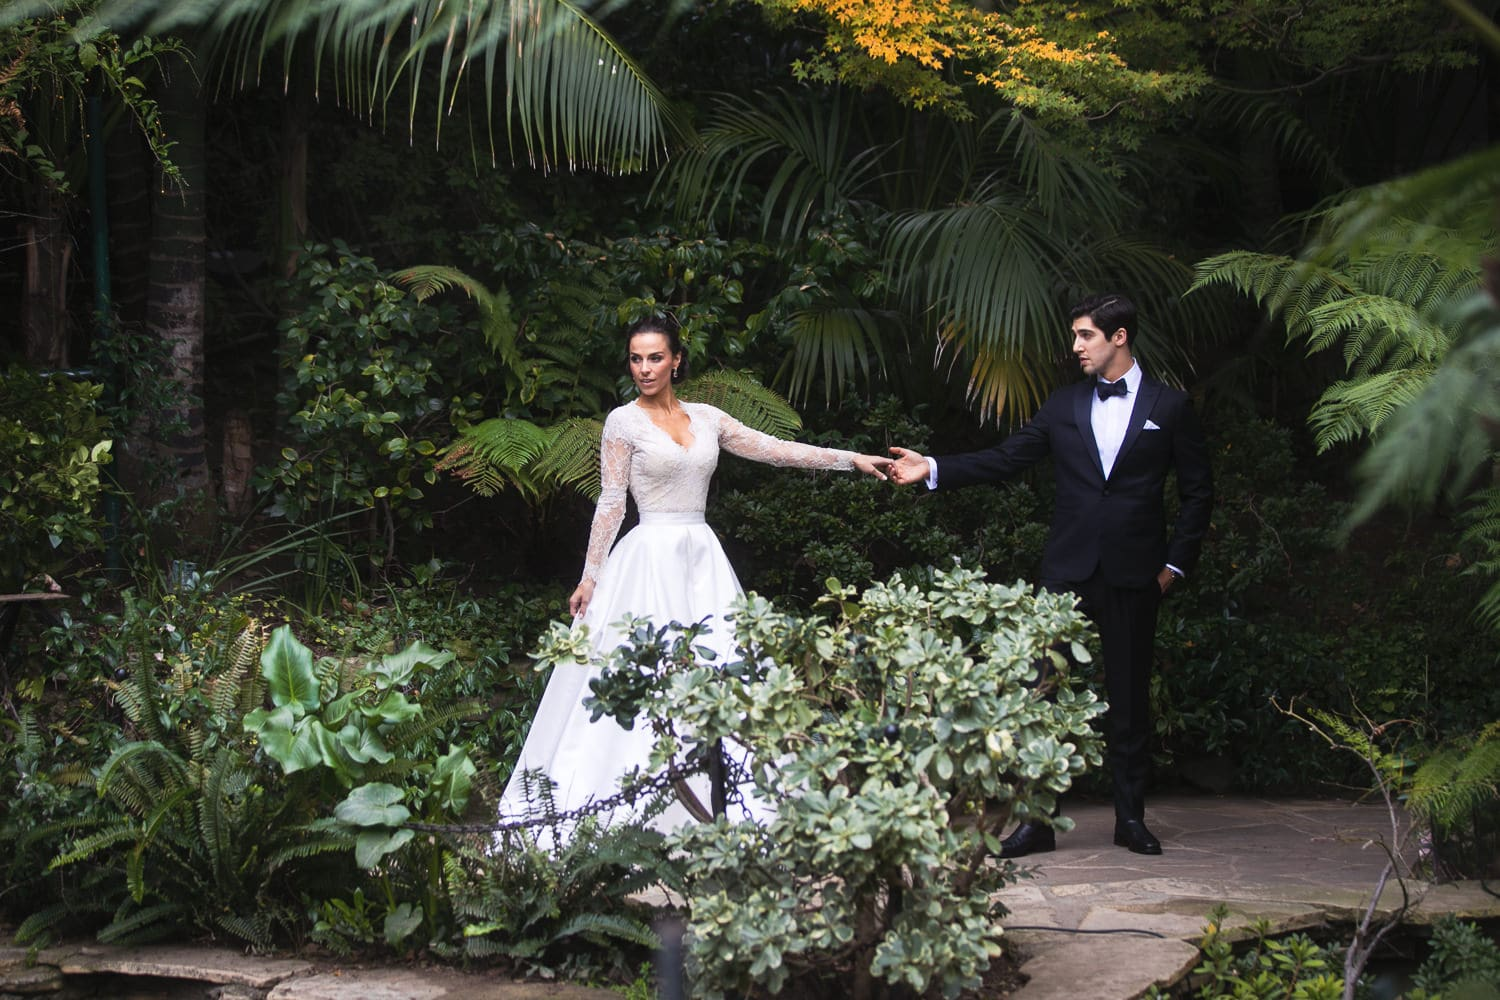 wedding photo by the swans at Hotel Bel-Air